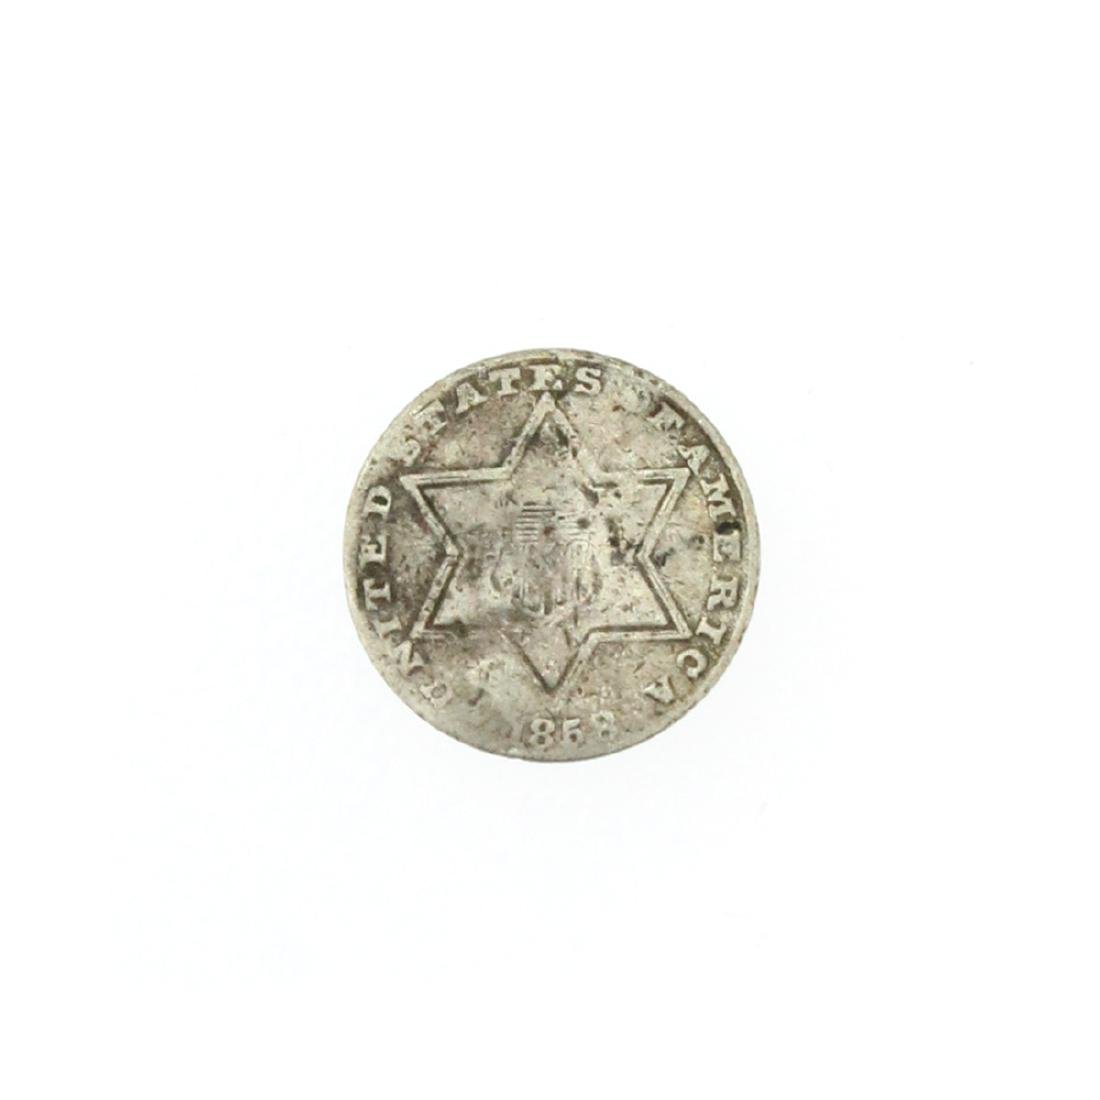 1858 Silver Three-Cent Coin